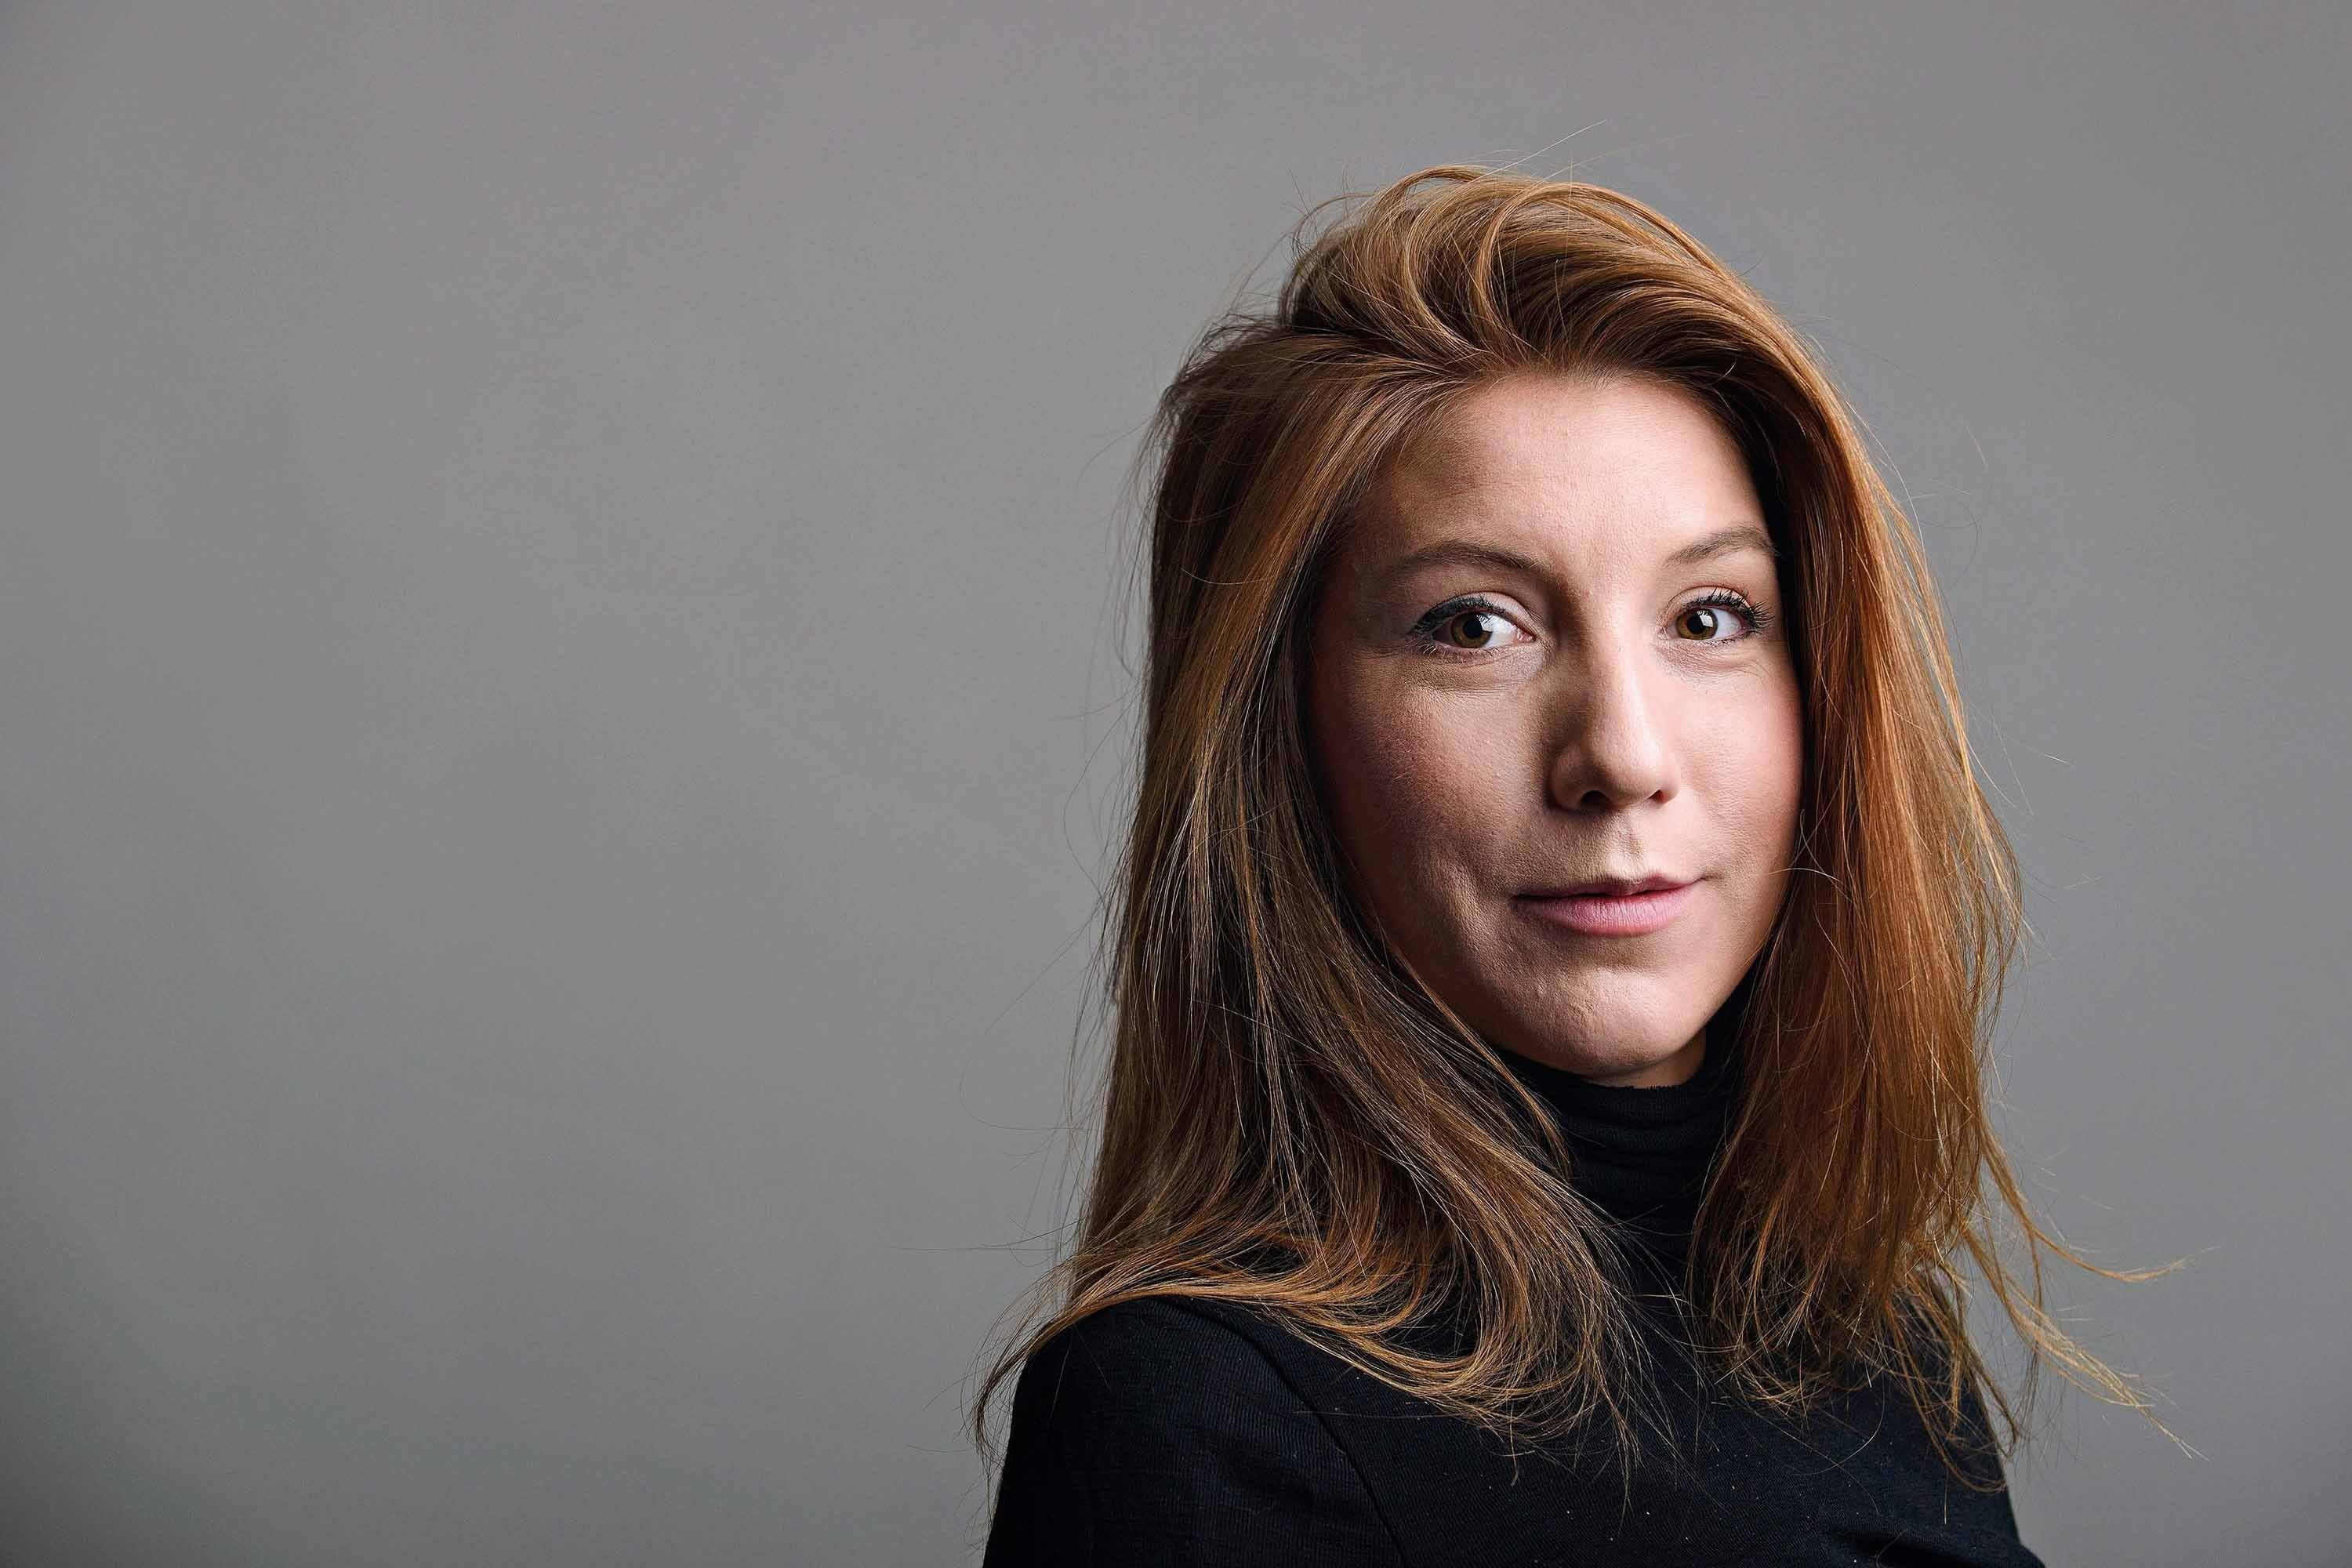 Danish inventor Peter Madsen pleaded not guilty to murdering Swedish journalist Kim Wall (pictured) aboard his submarine last August, but acknowledged dismembering her corpse, as his trial began in Copenhagen on Thursday, March 8, 2018.